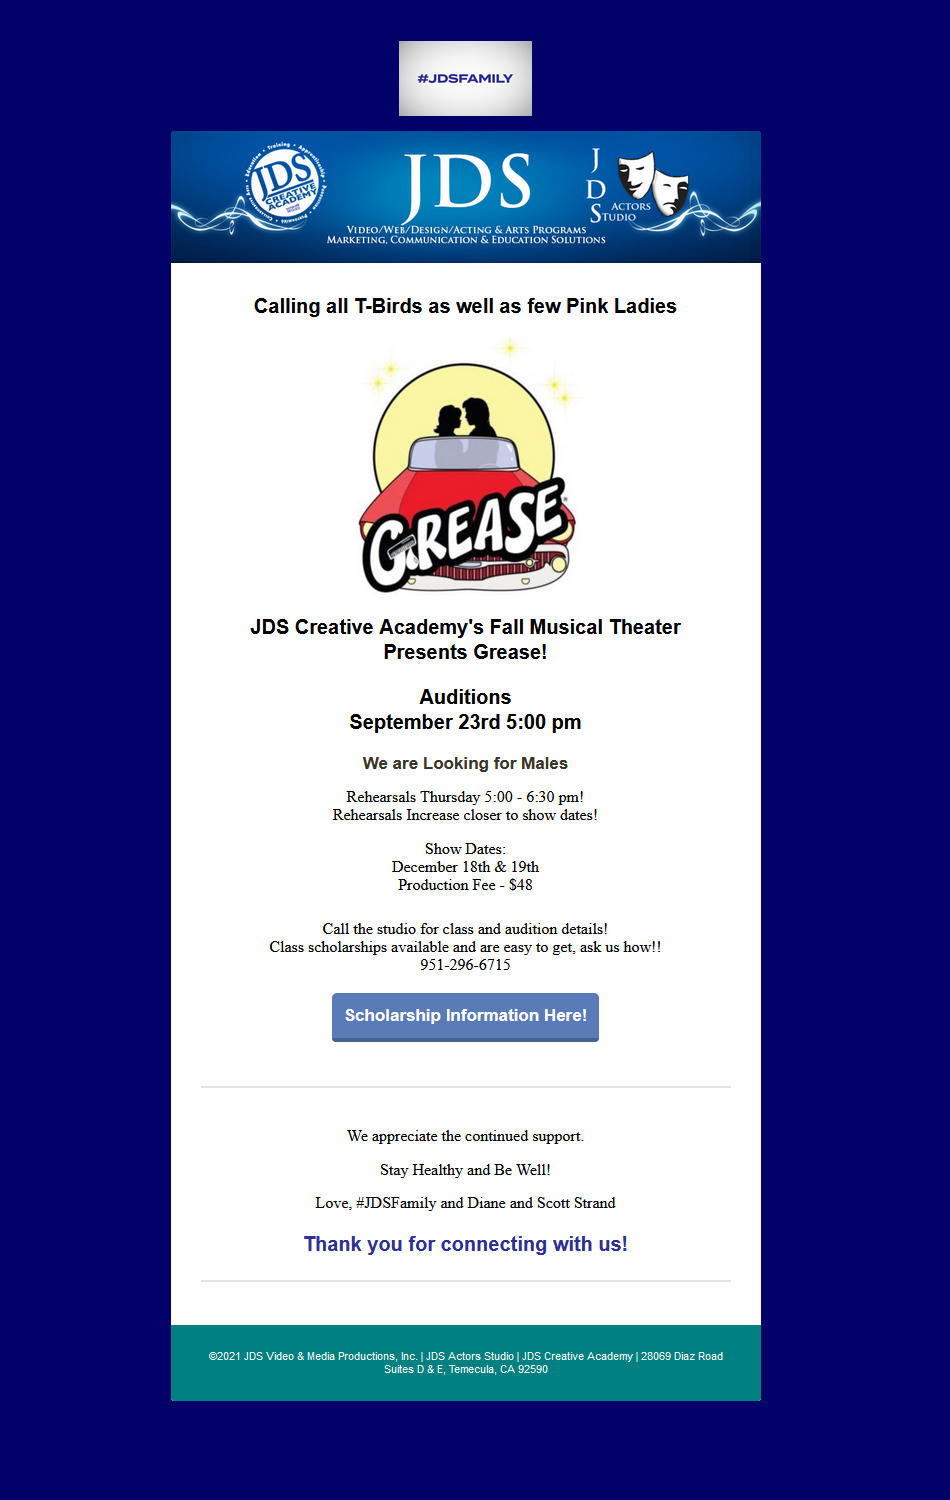 JDSCA Grease Auditions Thursday